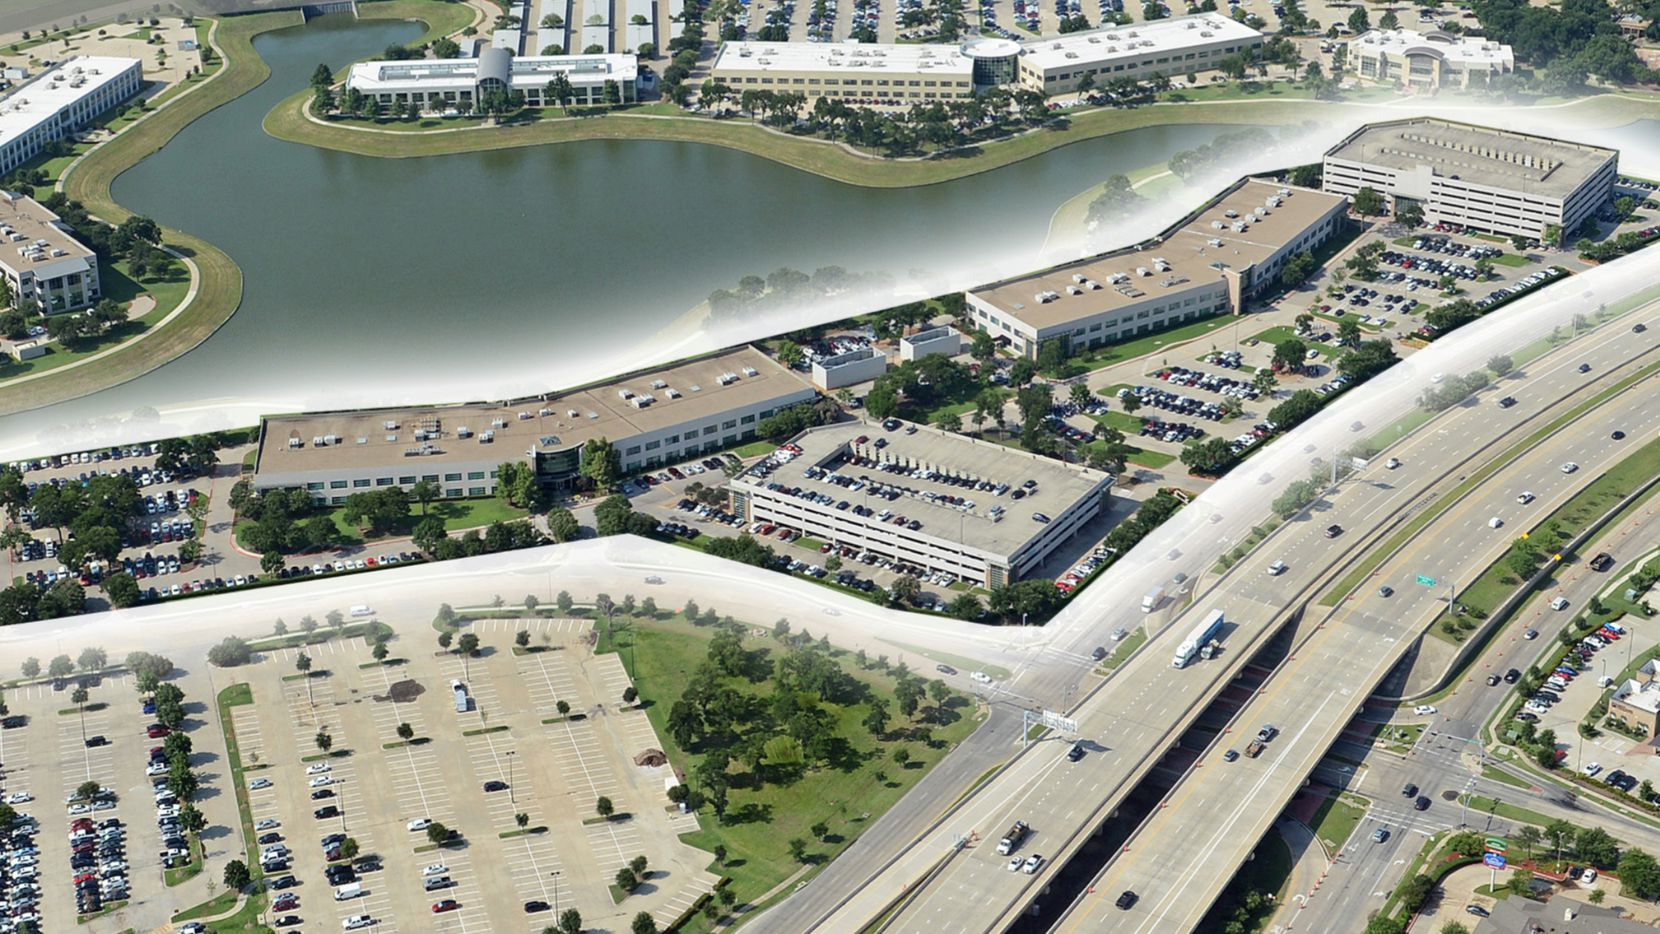 The Lake Vista 3 & 4 buildings are fully leased.